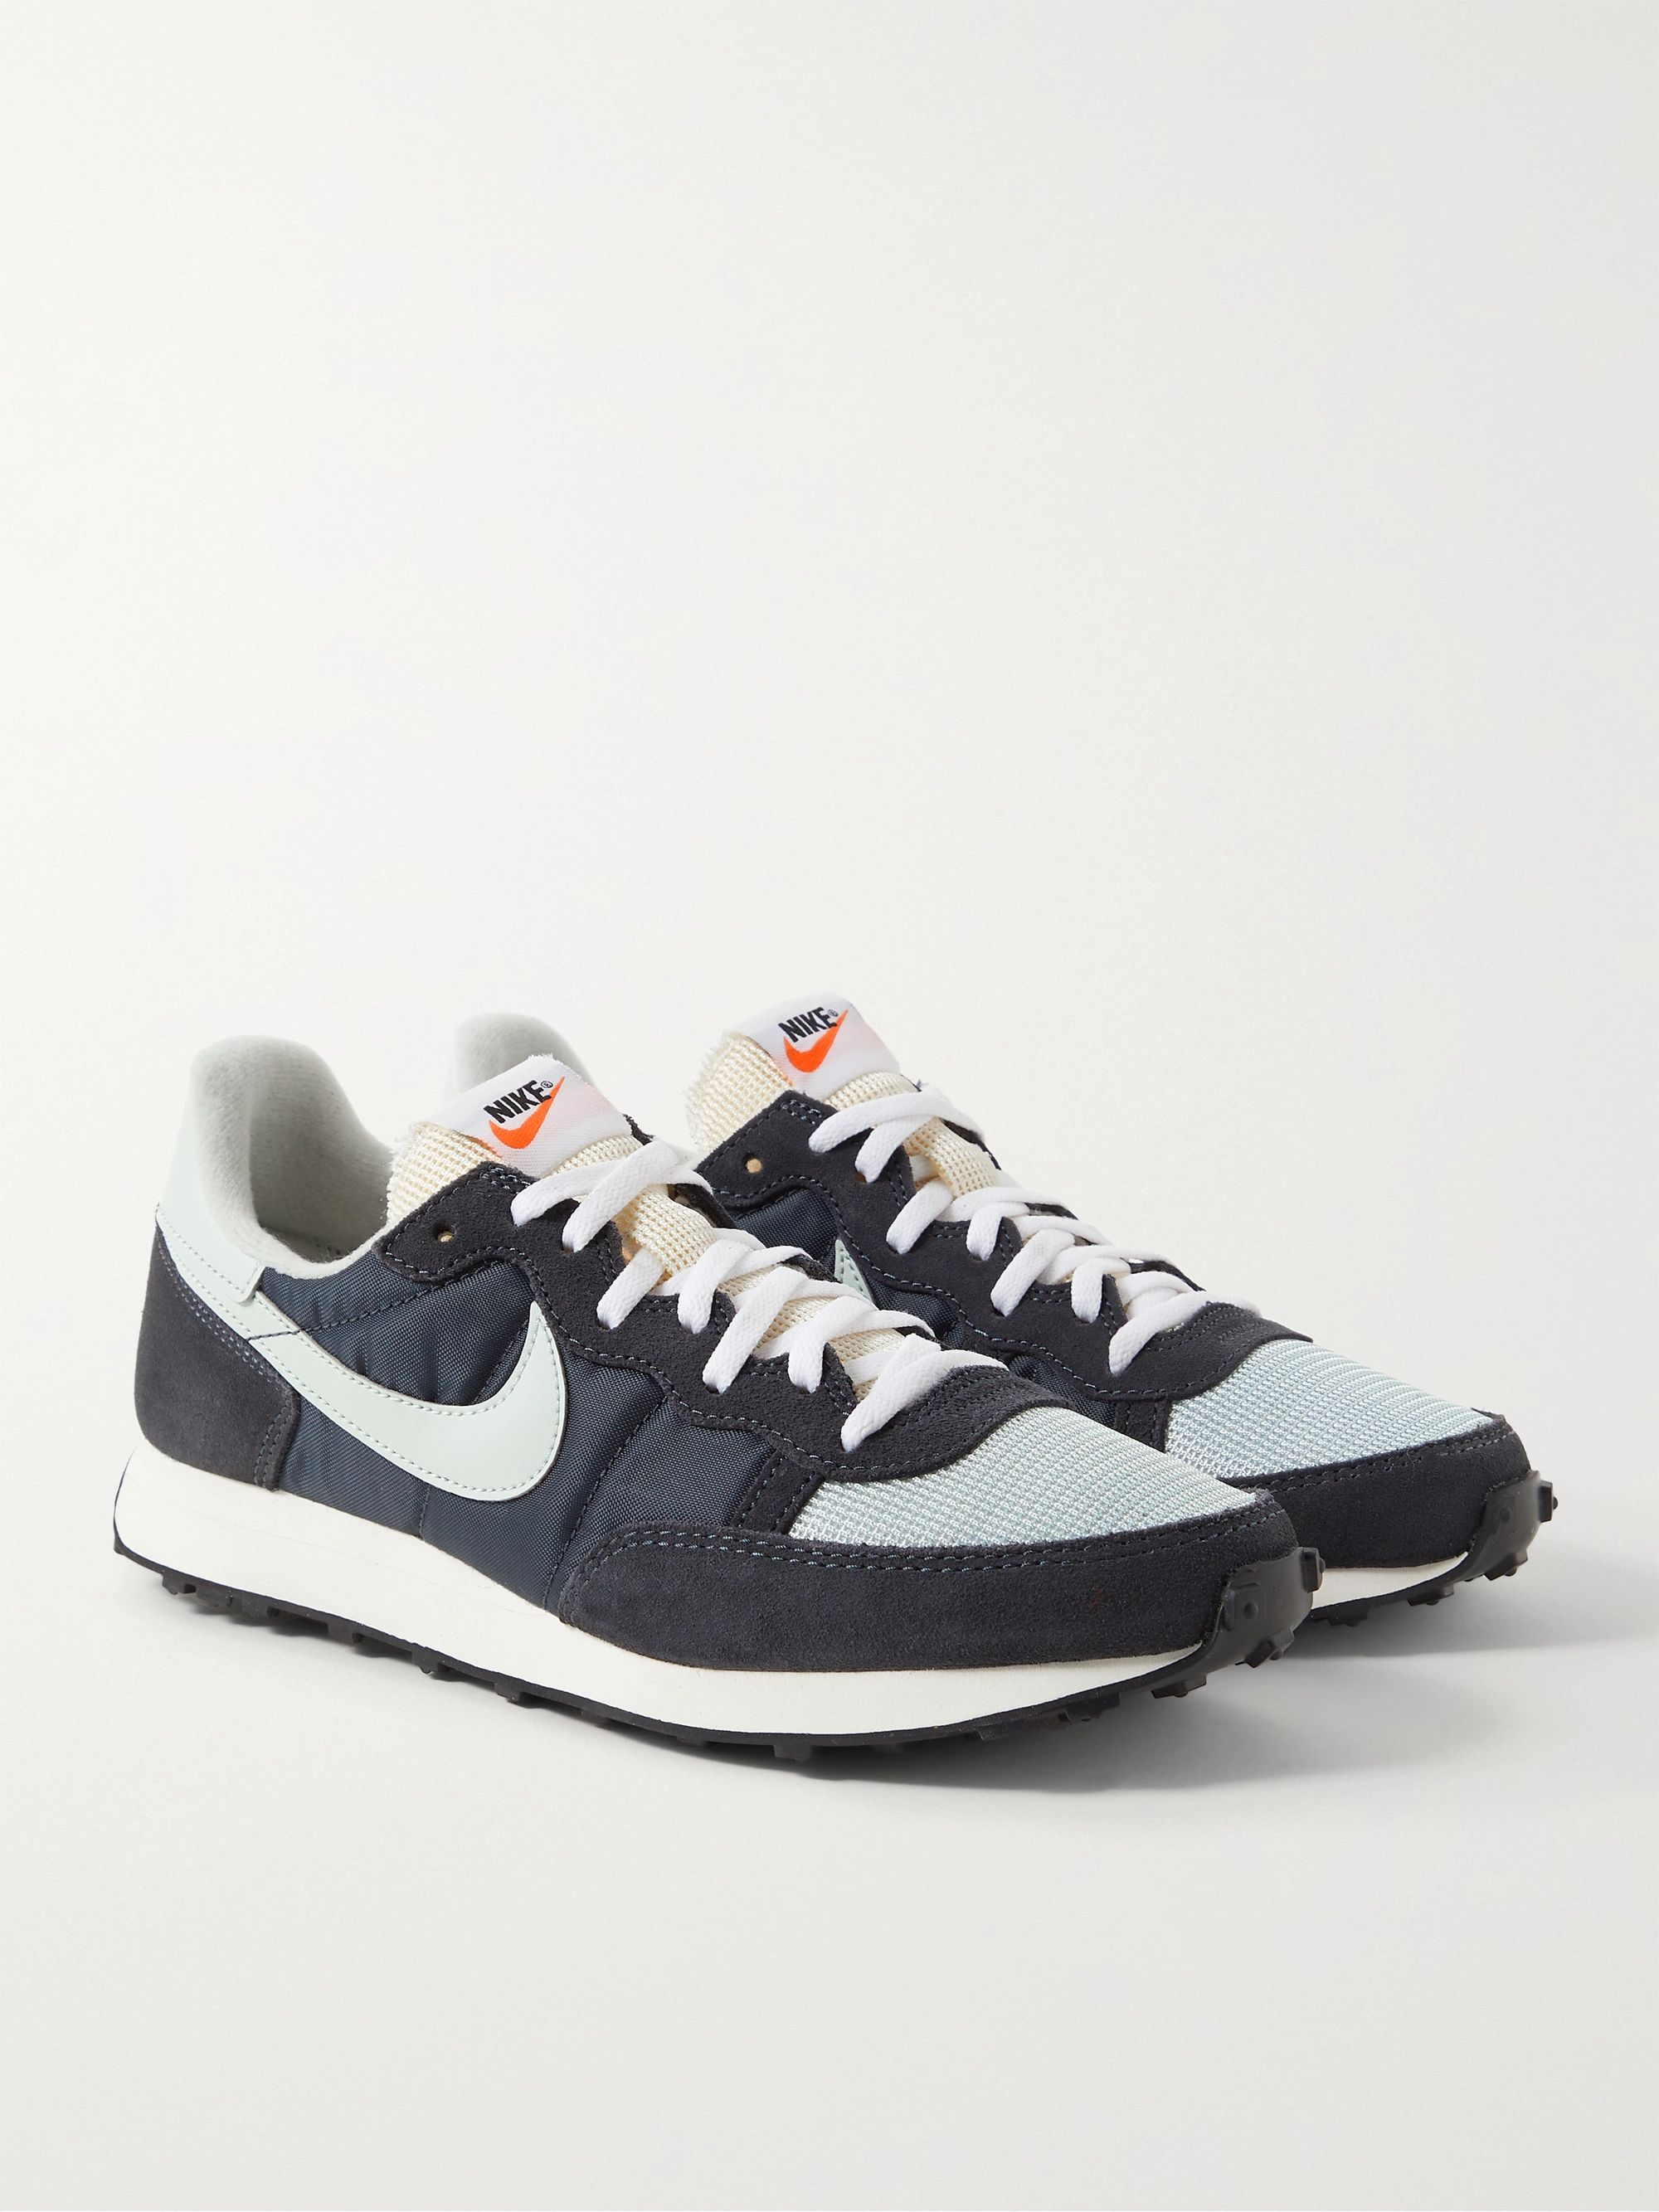 NIKE Challenger OG Nylon, Mesh, Suede and Leather Sneakers